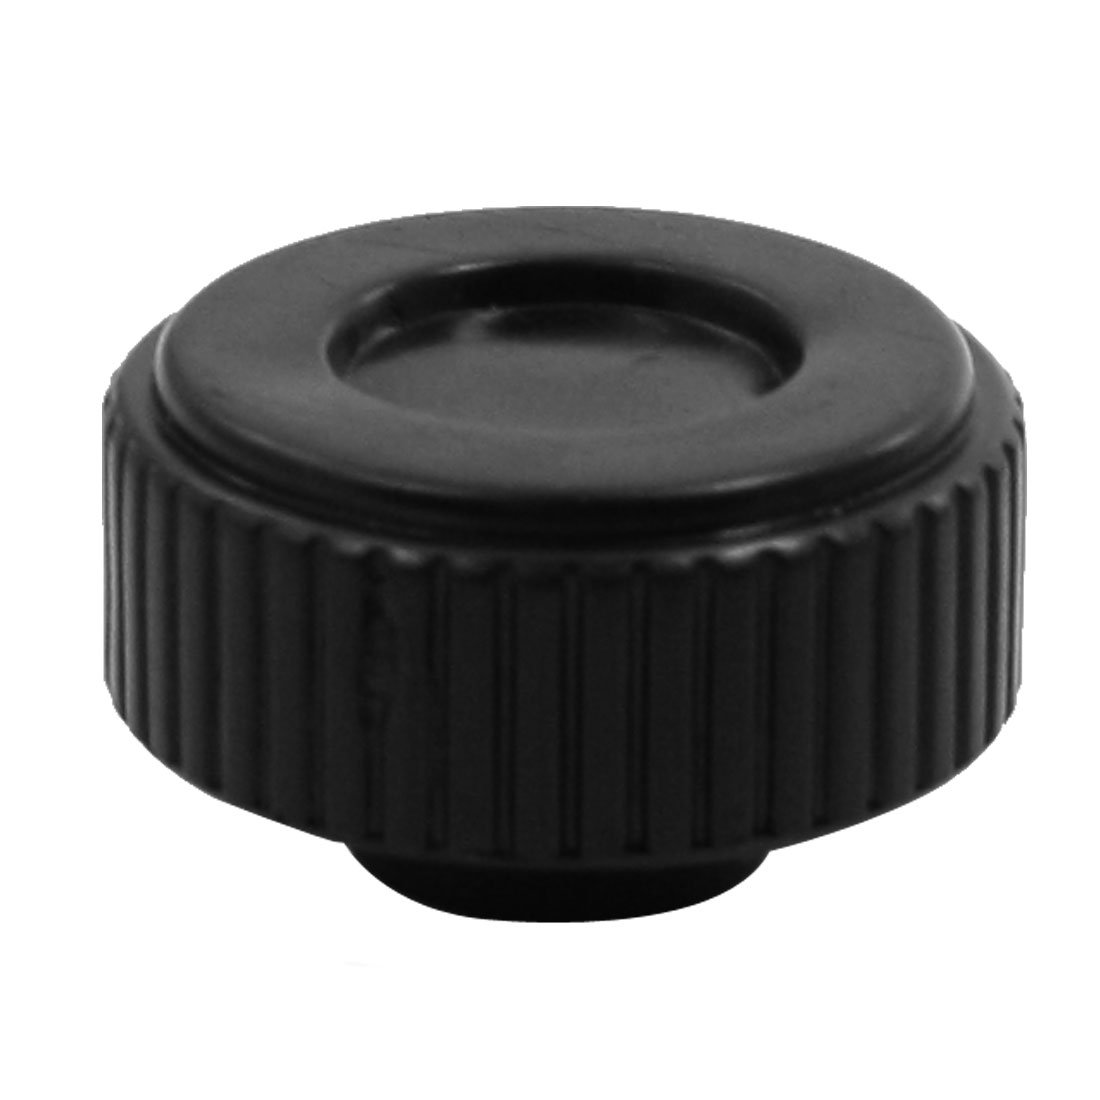 uxcell 8mm Diameter Female Thread Hole Screw On Type 1.5 inches Dia Round Knob